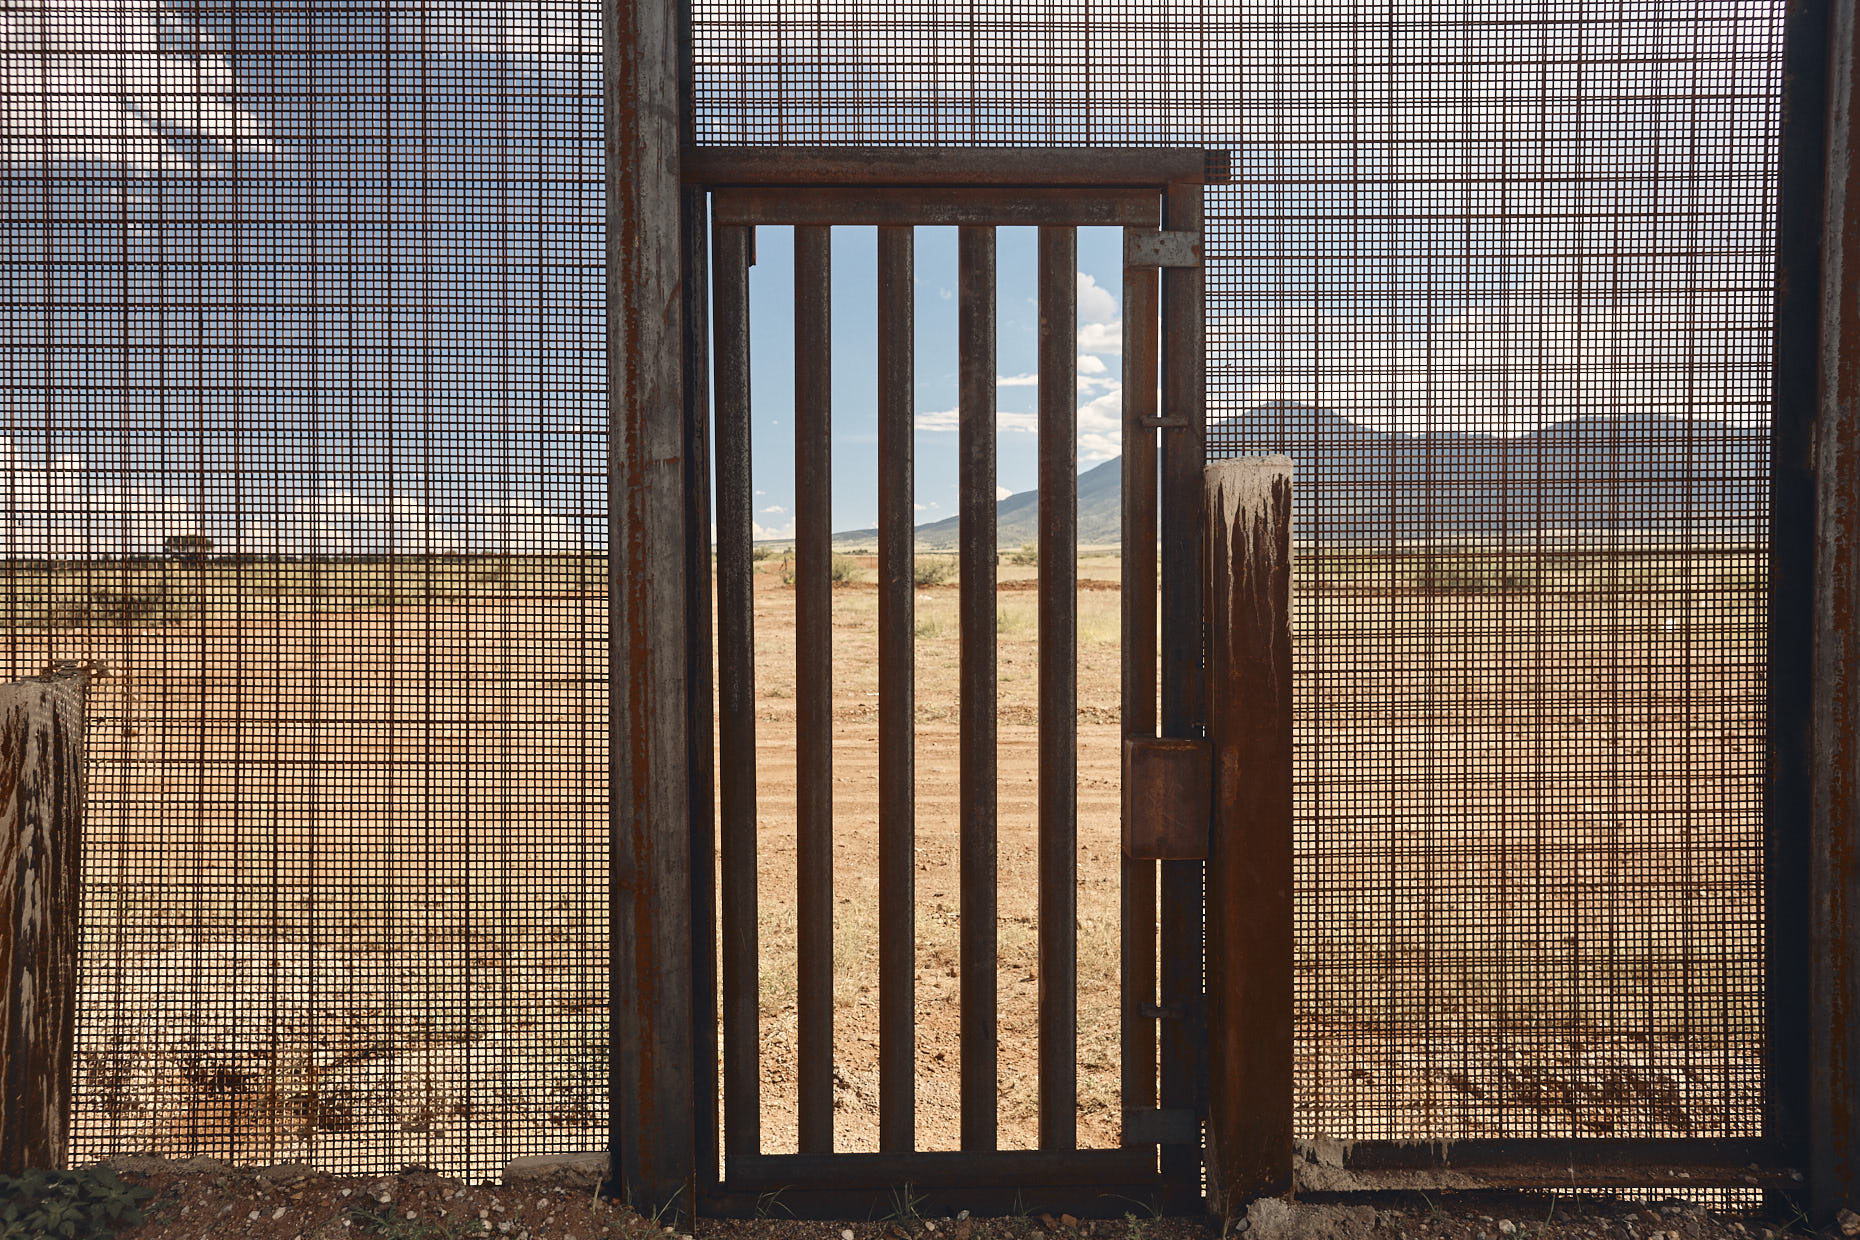 Arizona/Mexico International Border Wall